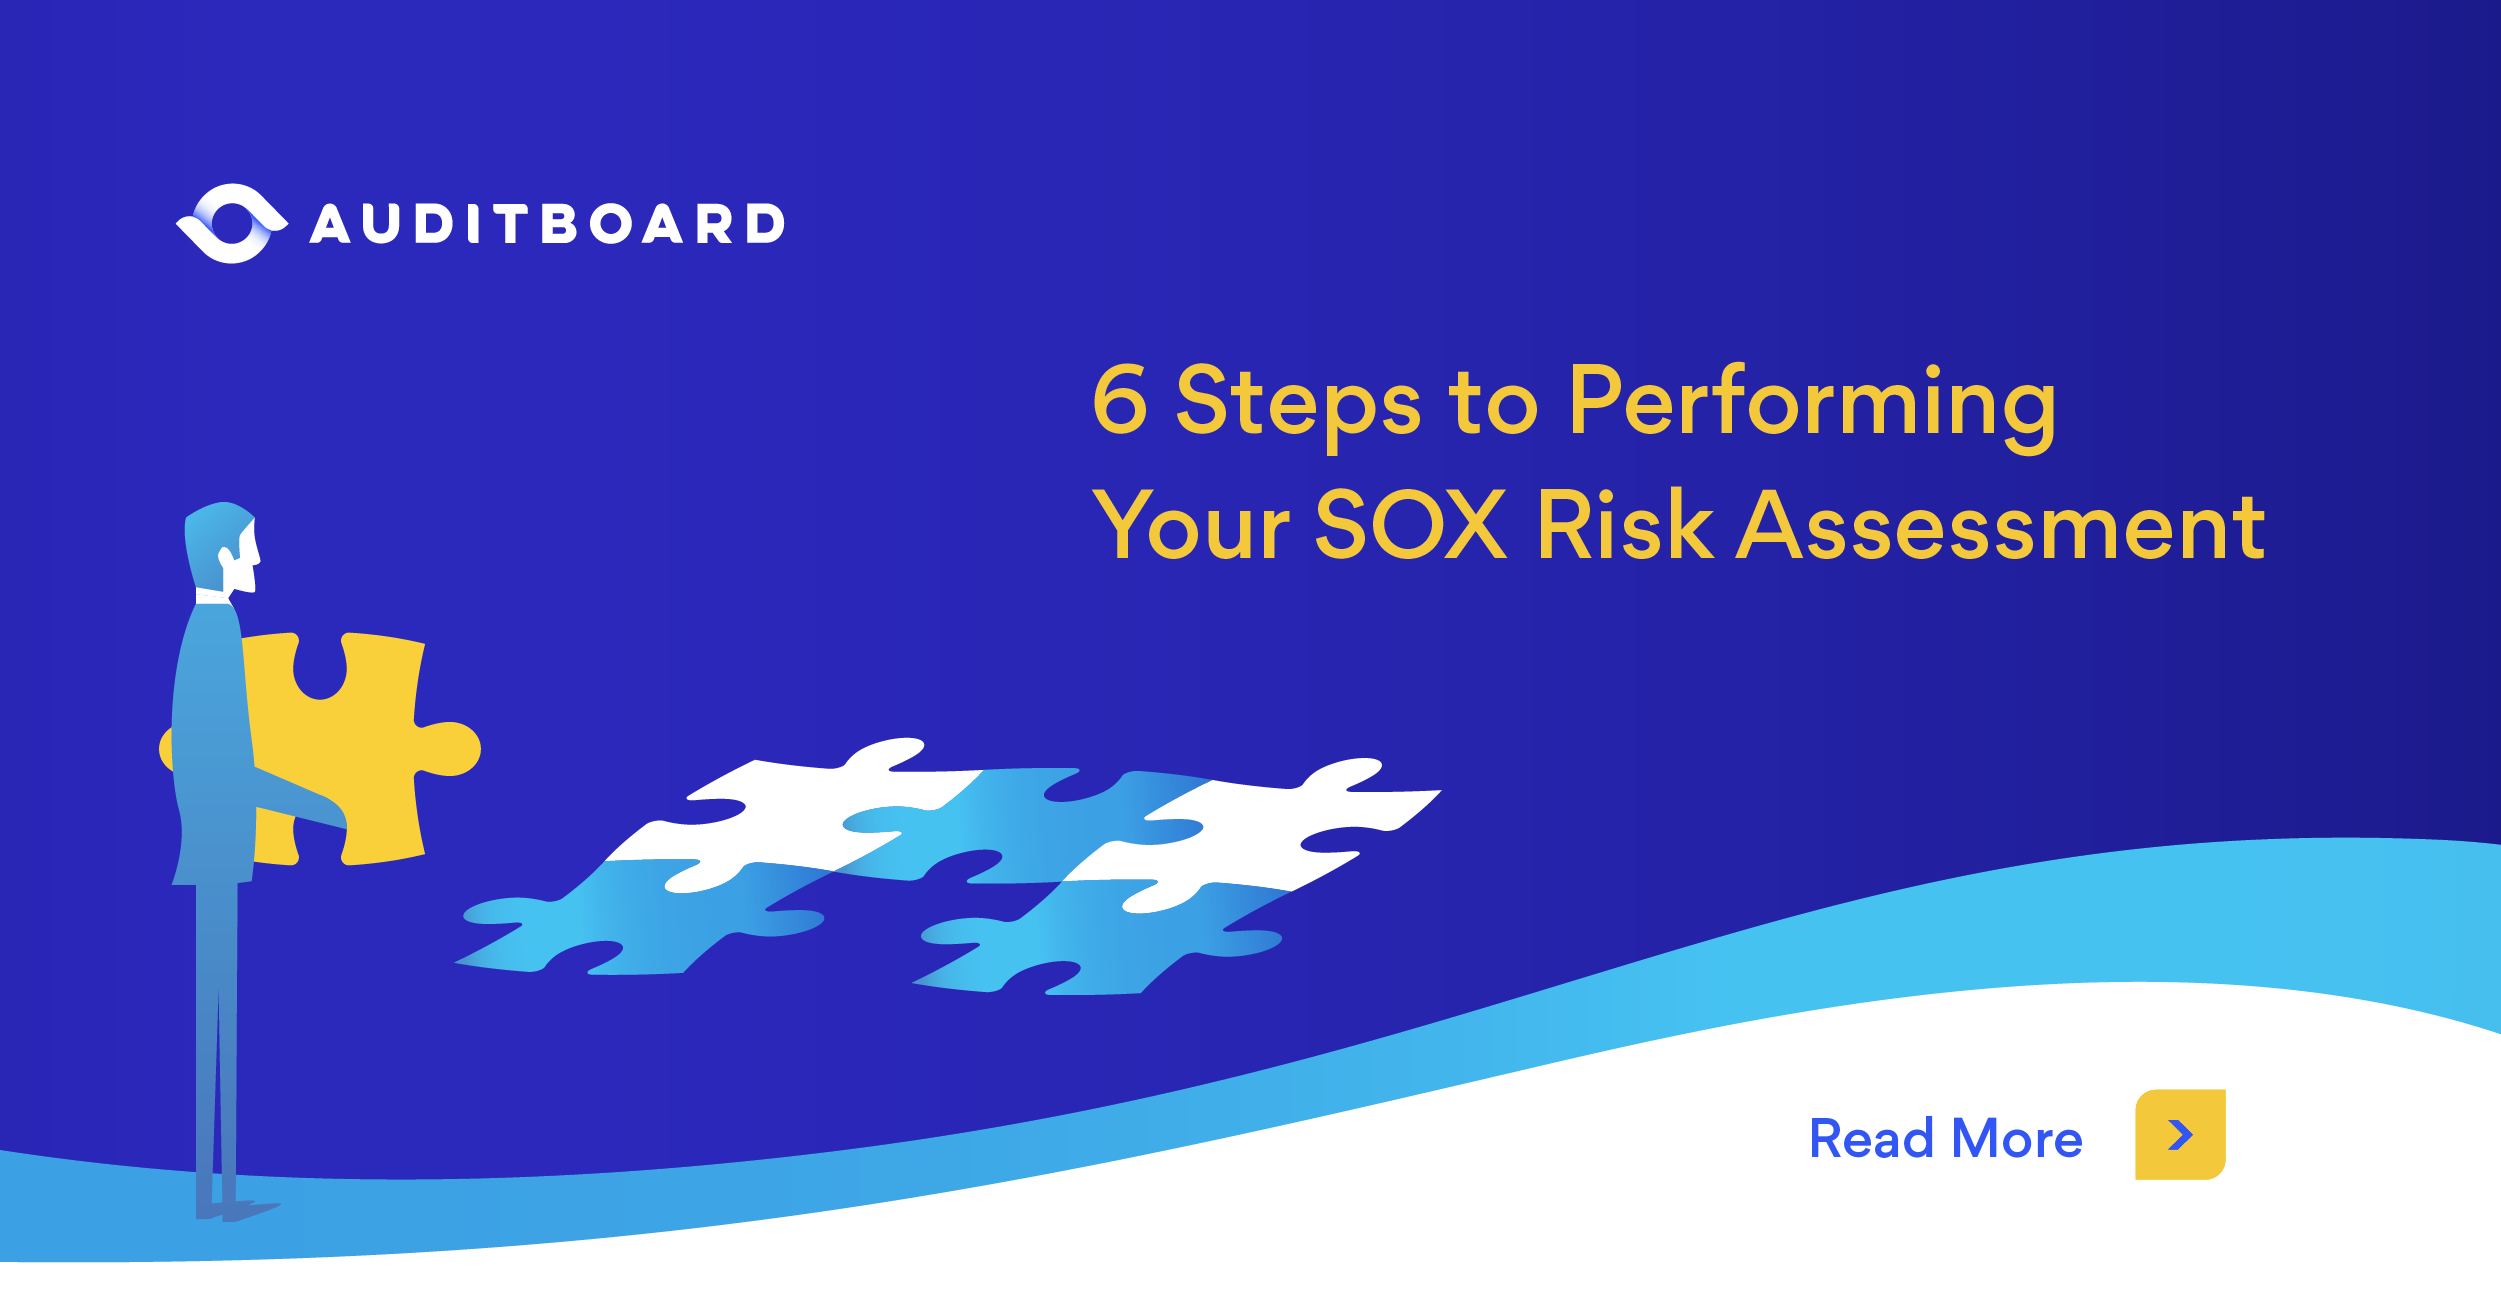 6 Steps to Performing Your SOX Risk Assessment | AuditBoard